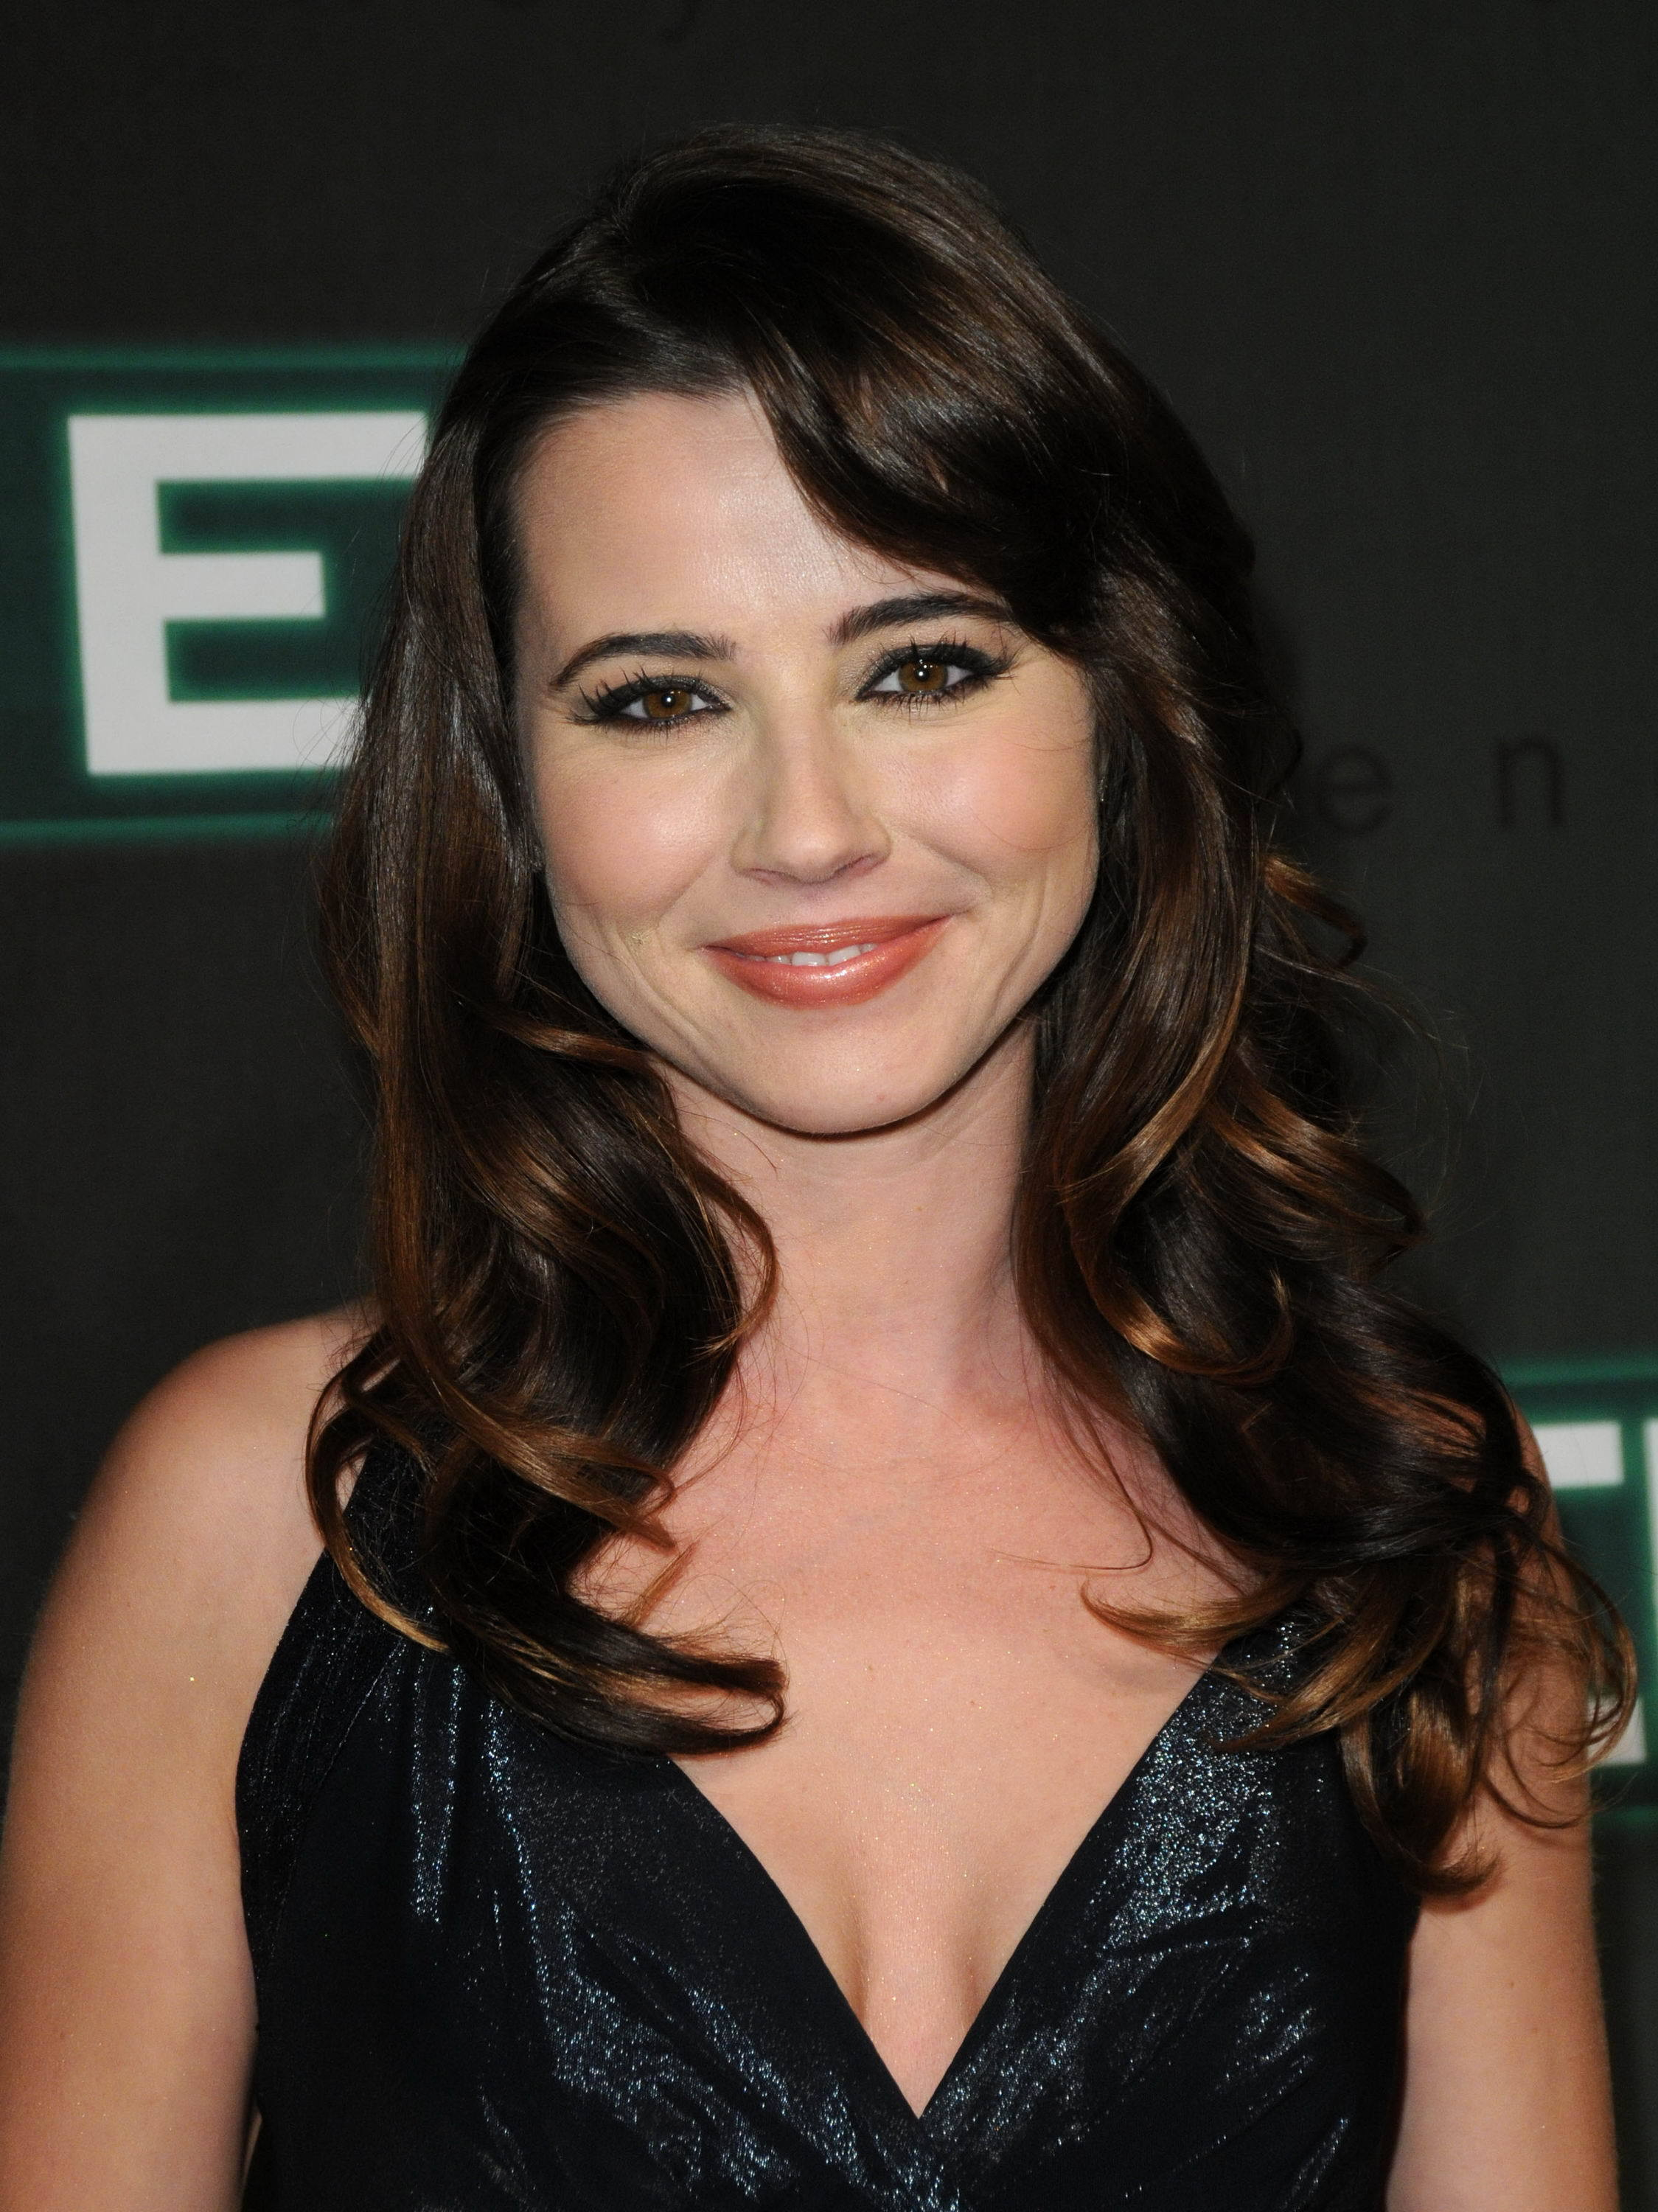 Linda Cardellini Height Weight Age Bra Size Affairs Body Stats